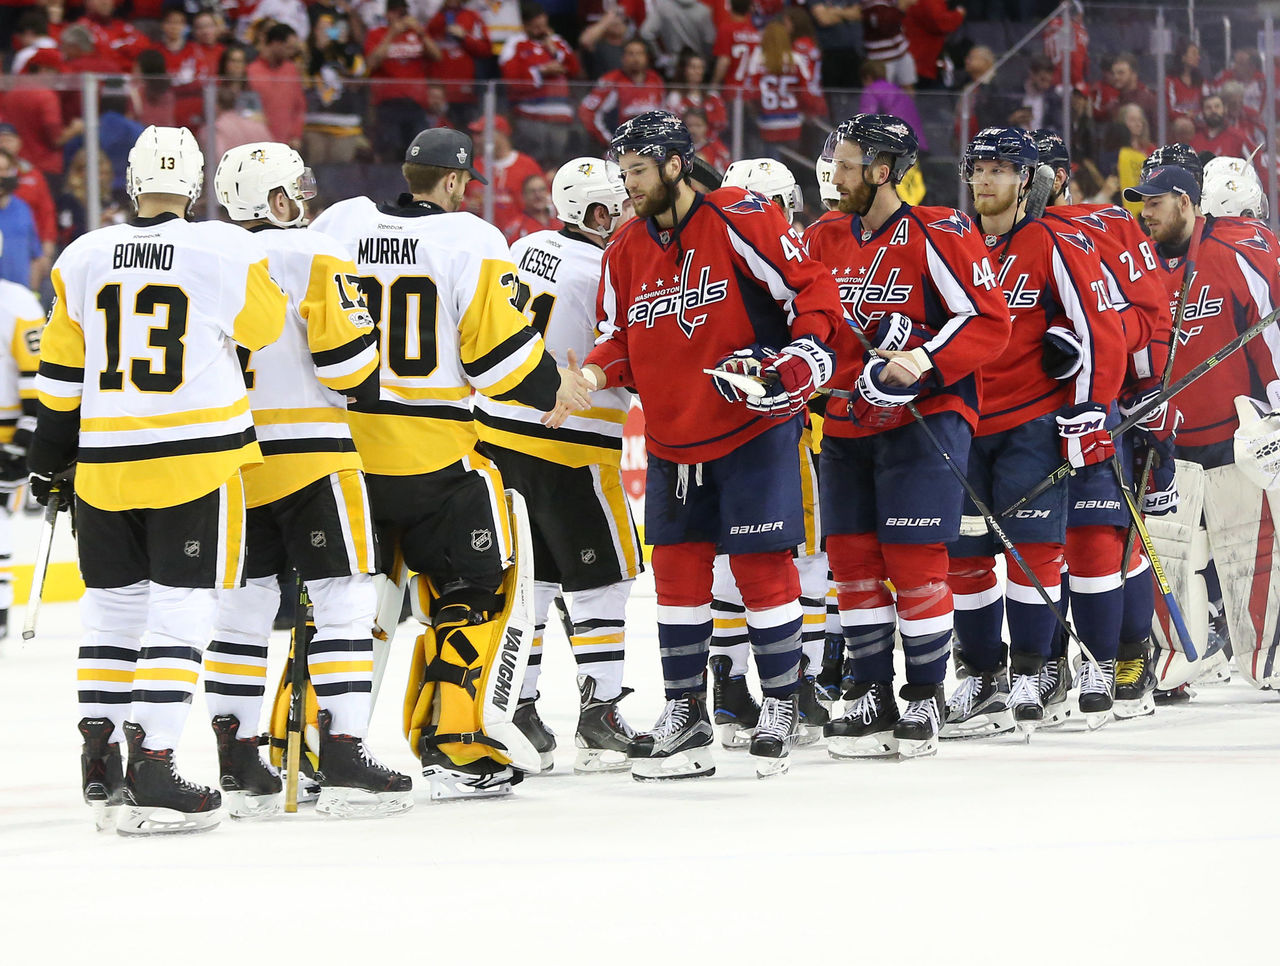 Cropped 2017 05 11t023537z 863459164 nocid rtrmadp 3 nhl stanley cup playoffs pittsburgh penguins at washington capitals